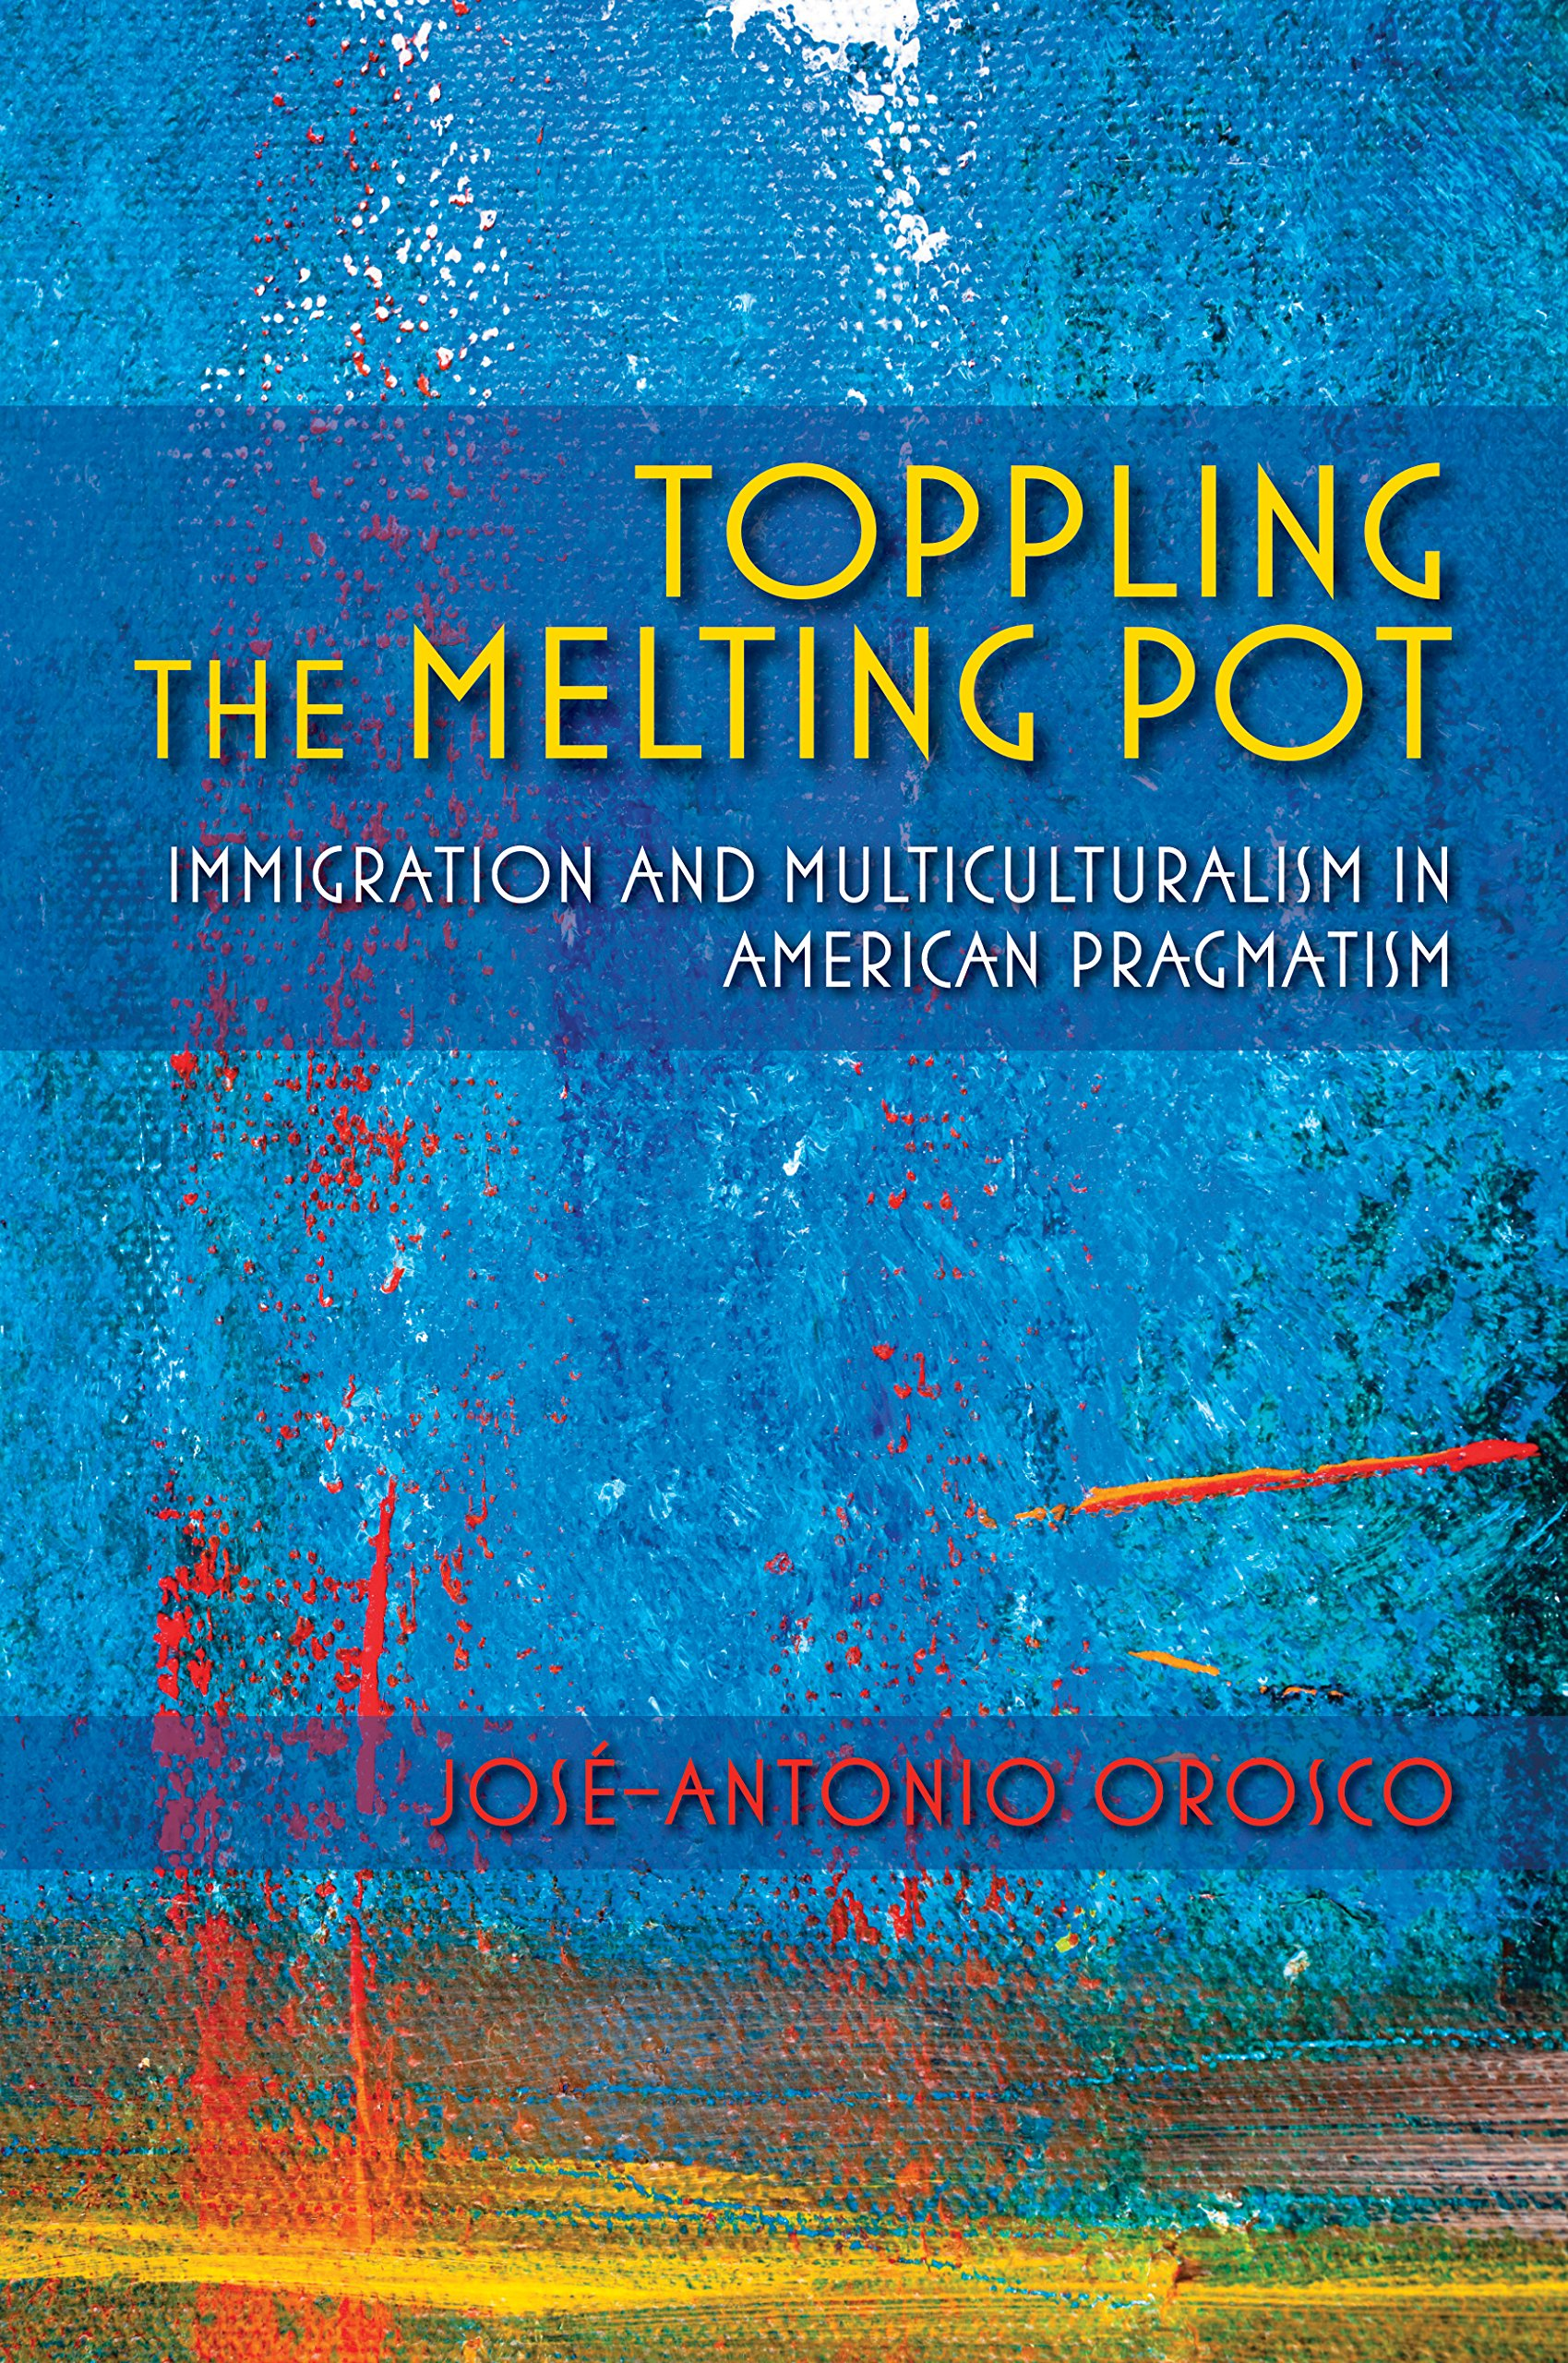 Toppling the Melting Pot: Immigration and Multiculturalism in American Pragmatism (American Philosophy) ebook